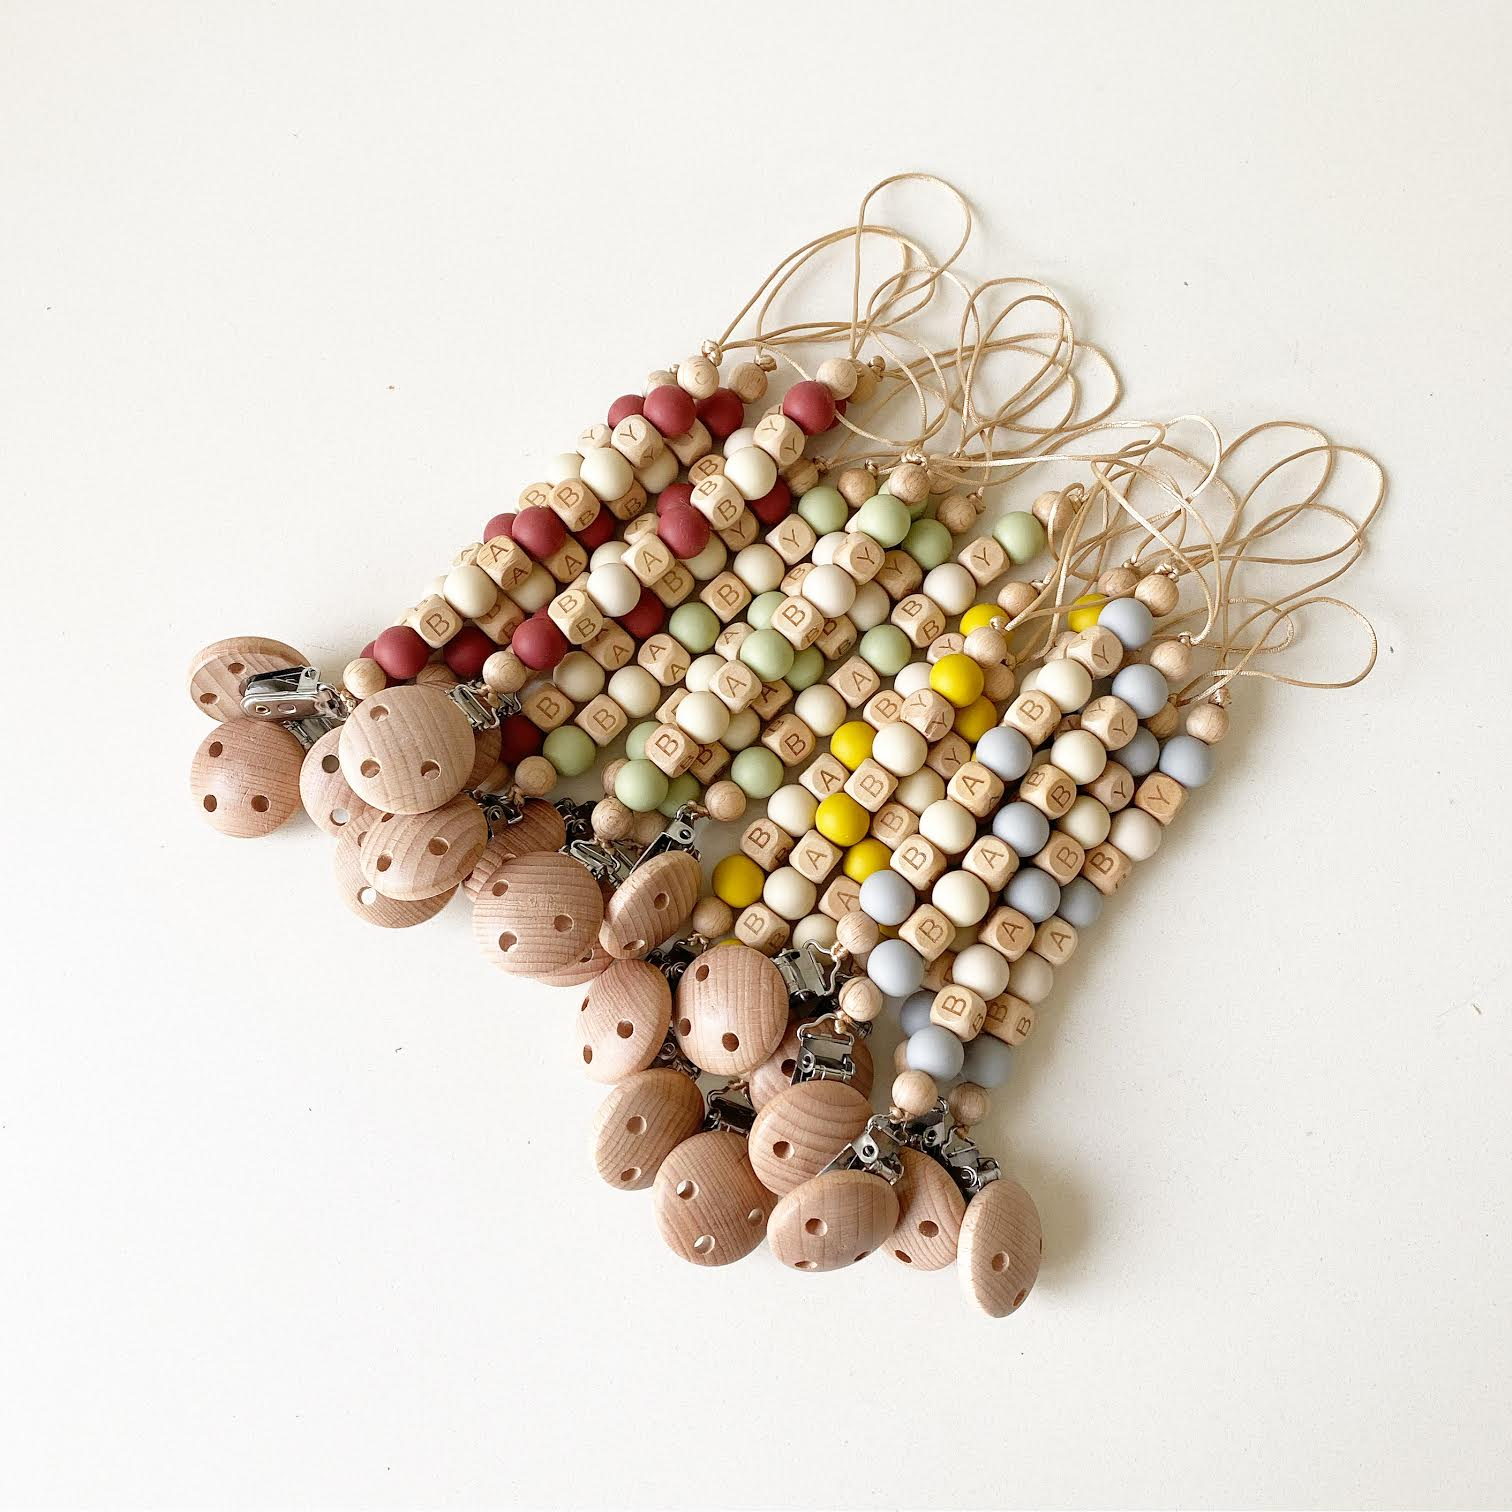 Fussy Teeth:  Silicone + Beech Wood Beads Pacifier Clips - rose, sage, grey, mustard